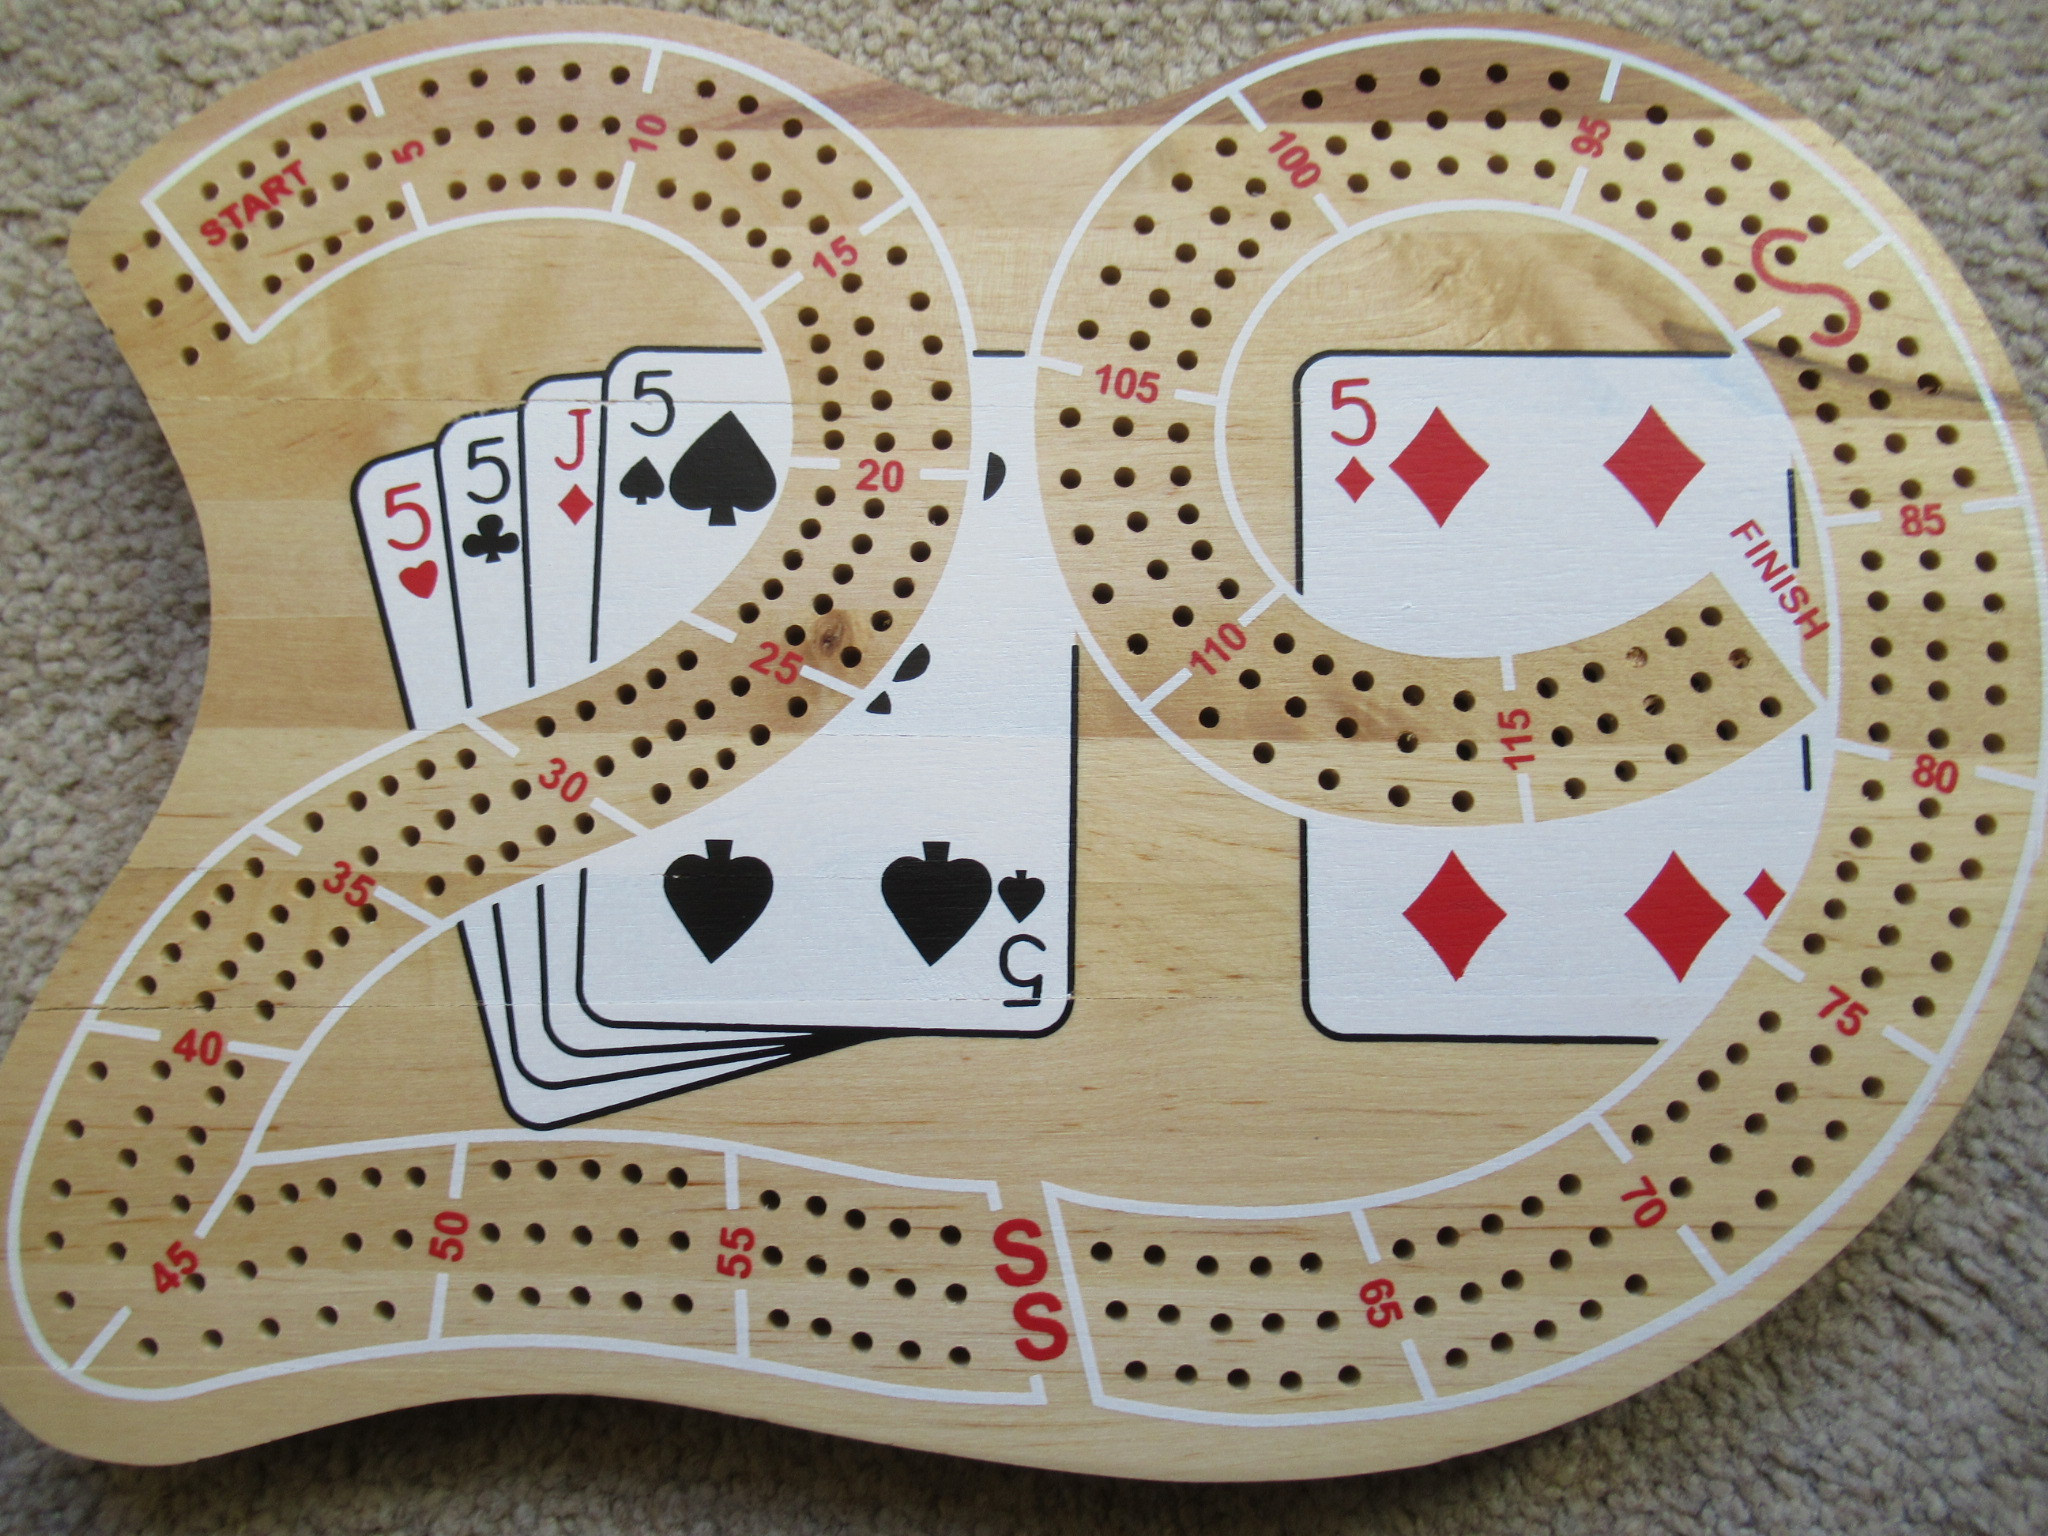 Our inspirational Cribbage board